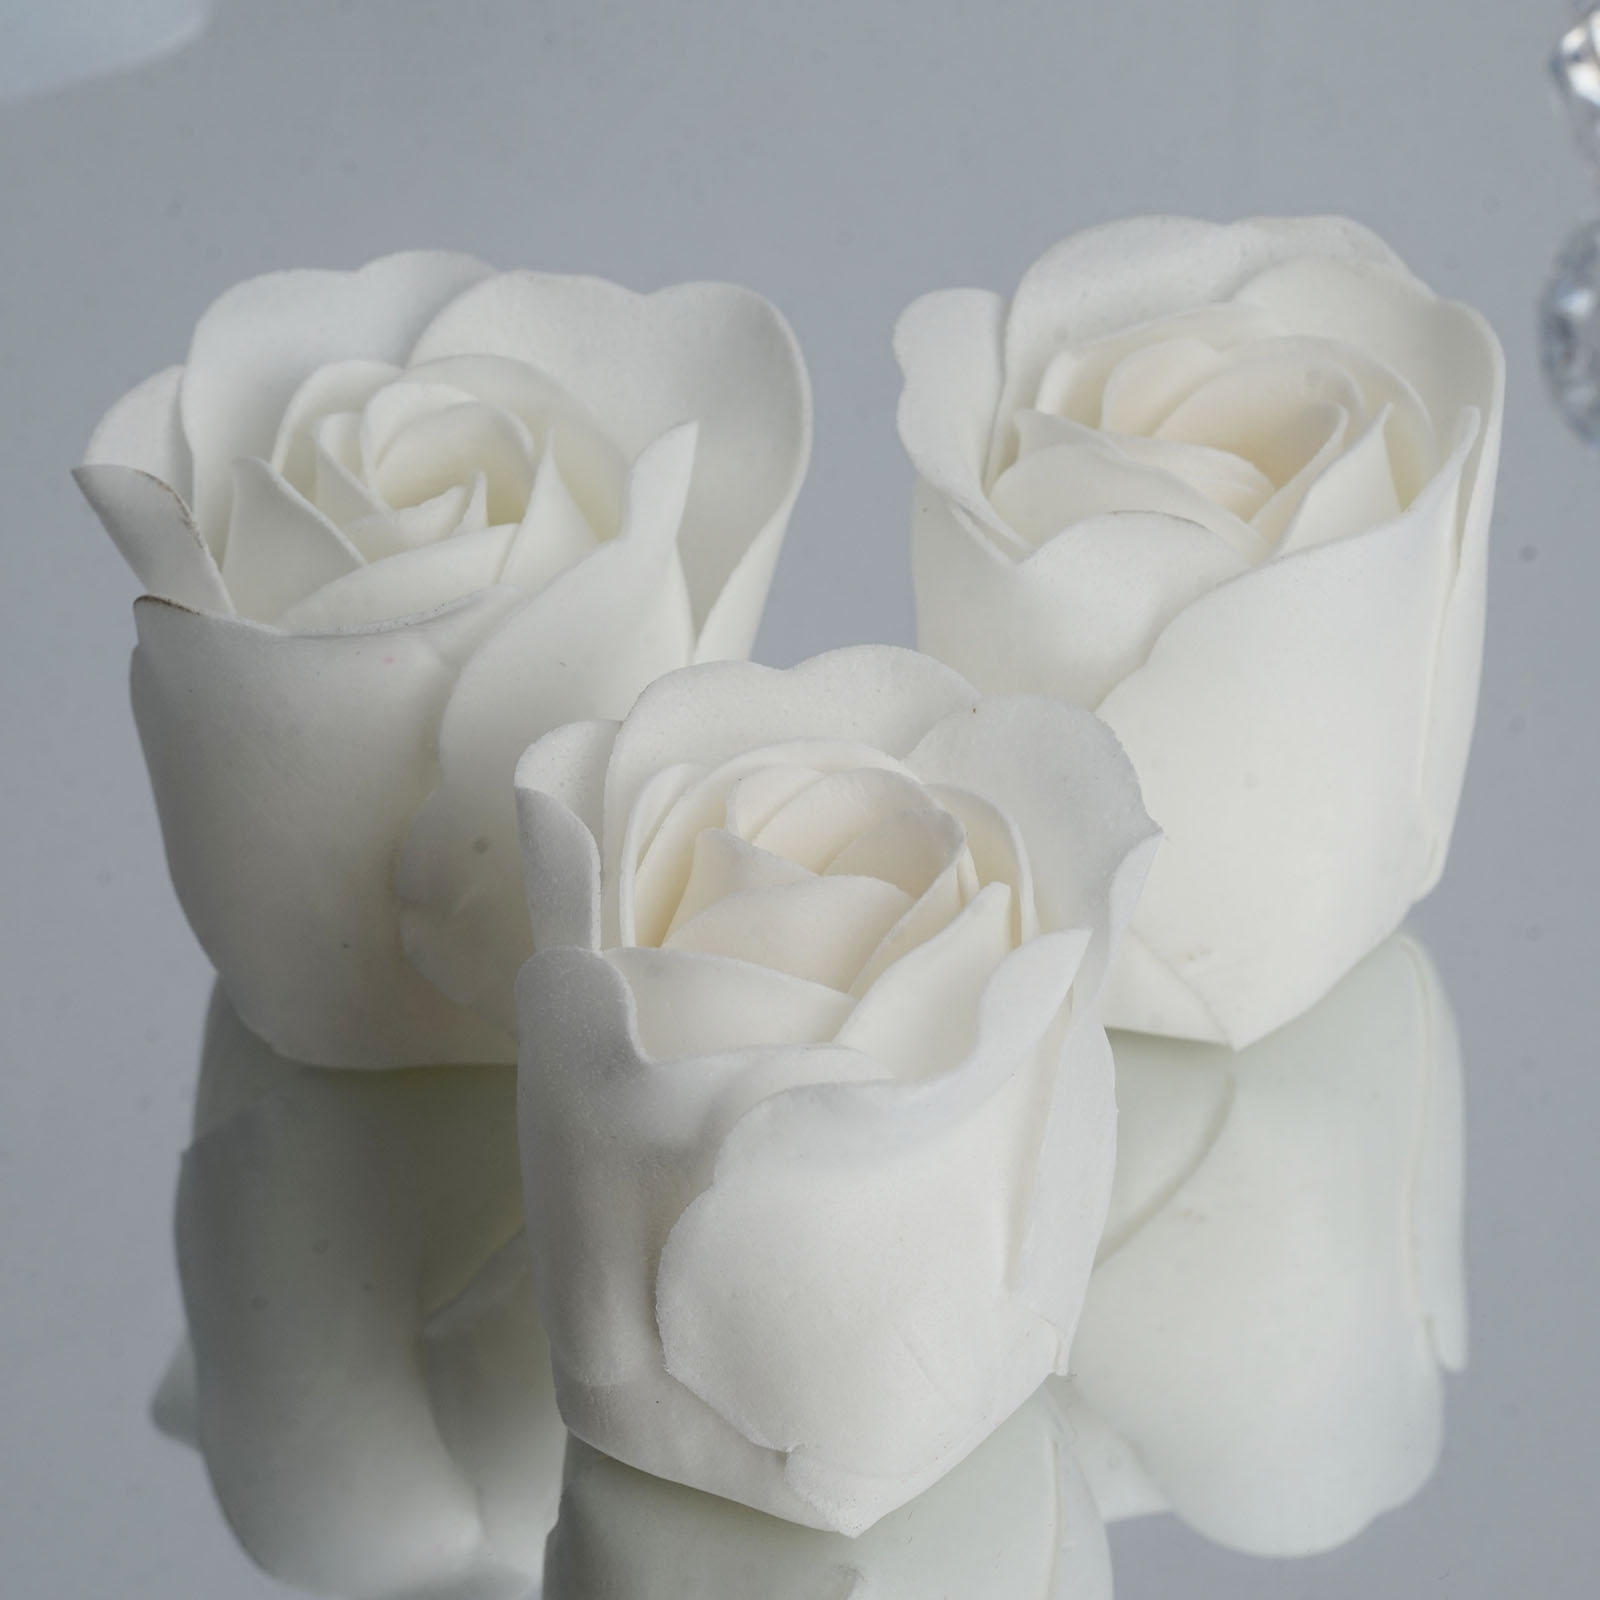 100 Wedding Favors Rose Soap Hearts in a Box - 24 colors FREE ...